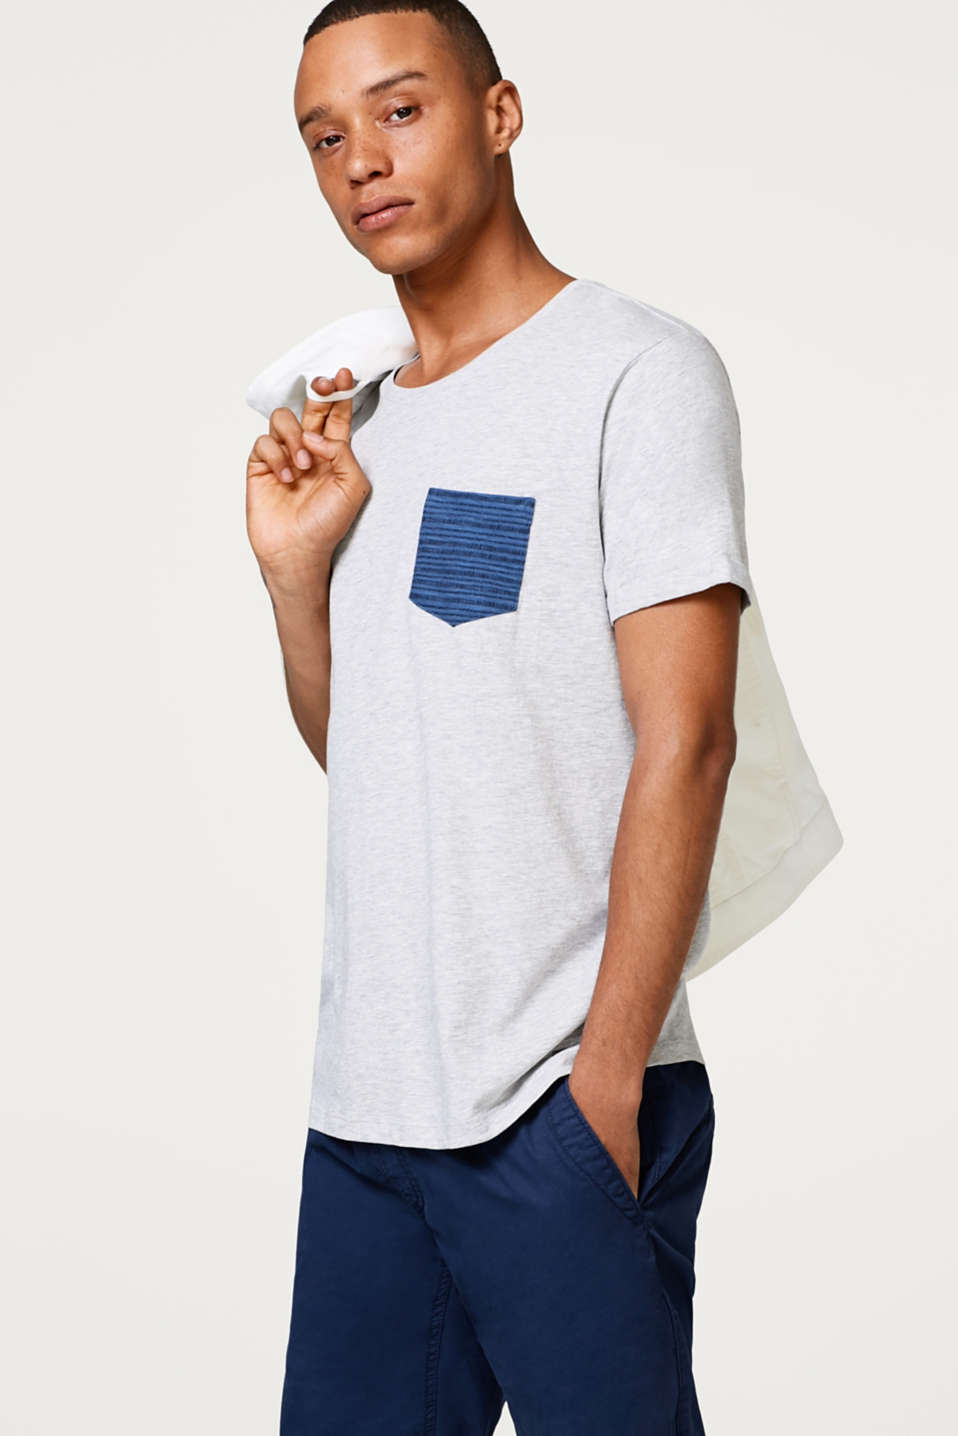 edc - Jersey T-shirt with an accentuated breast pocket